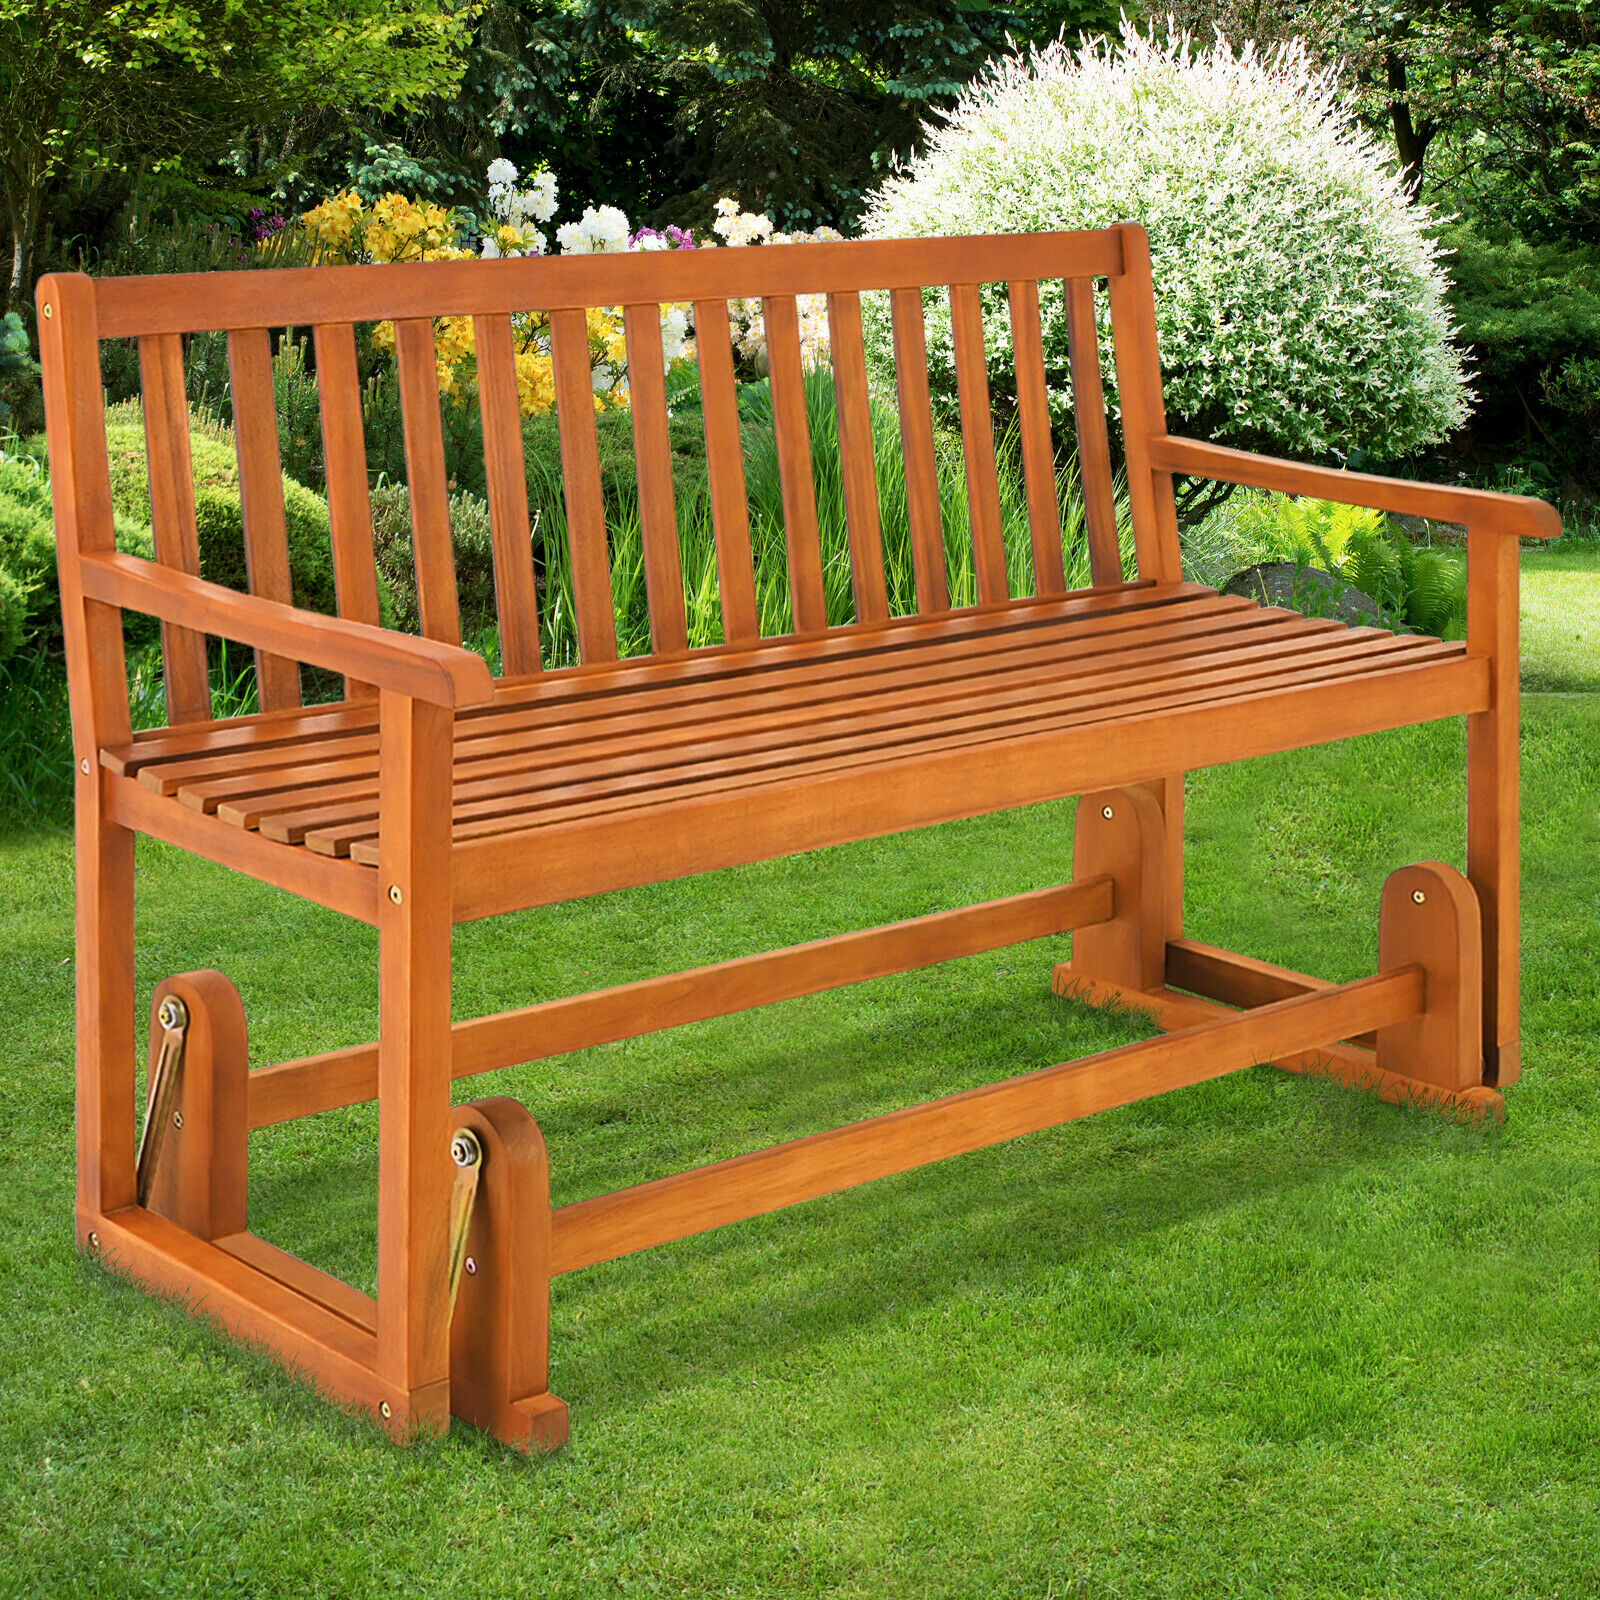 Wooden Swinging Seater Bench Garden Outdoor Rocking Glider Benches Made Of Pertaining To Rocking Glider Benches (View 13 of 25)